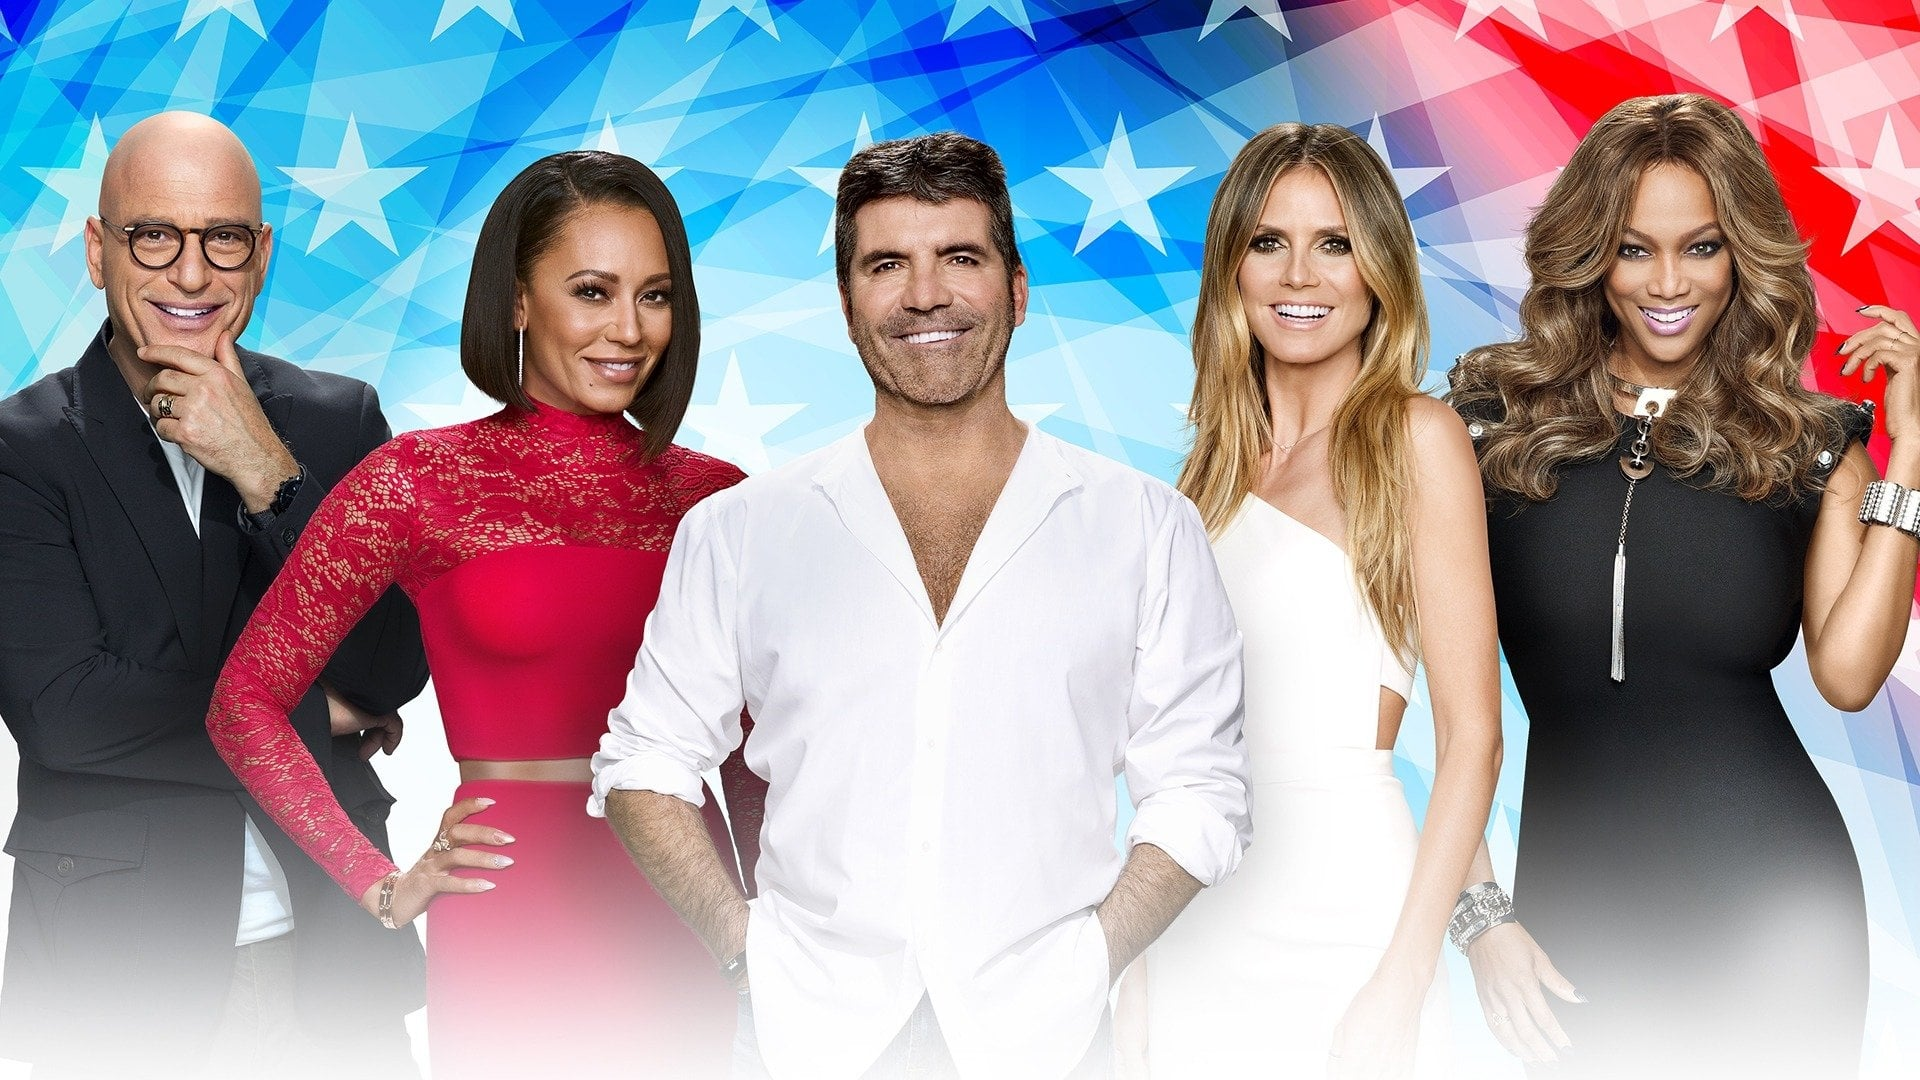 America's Got Talent - Season 1